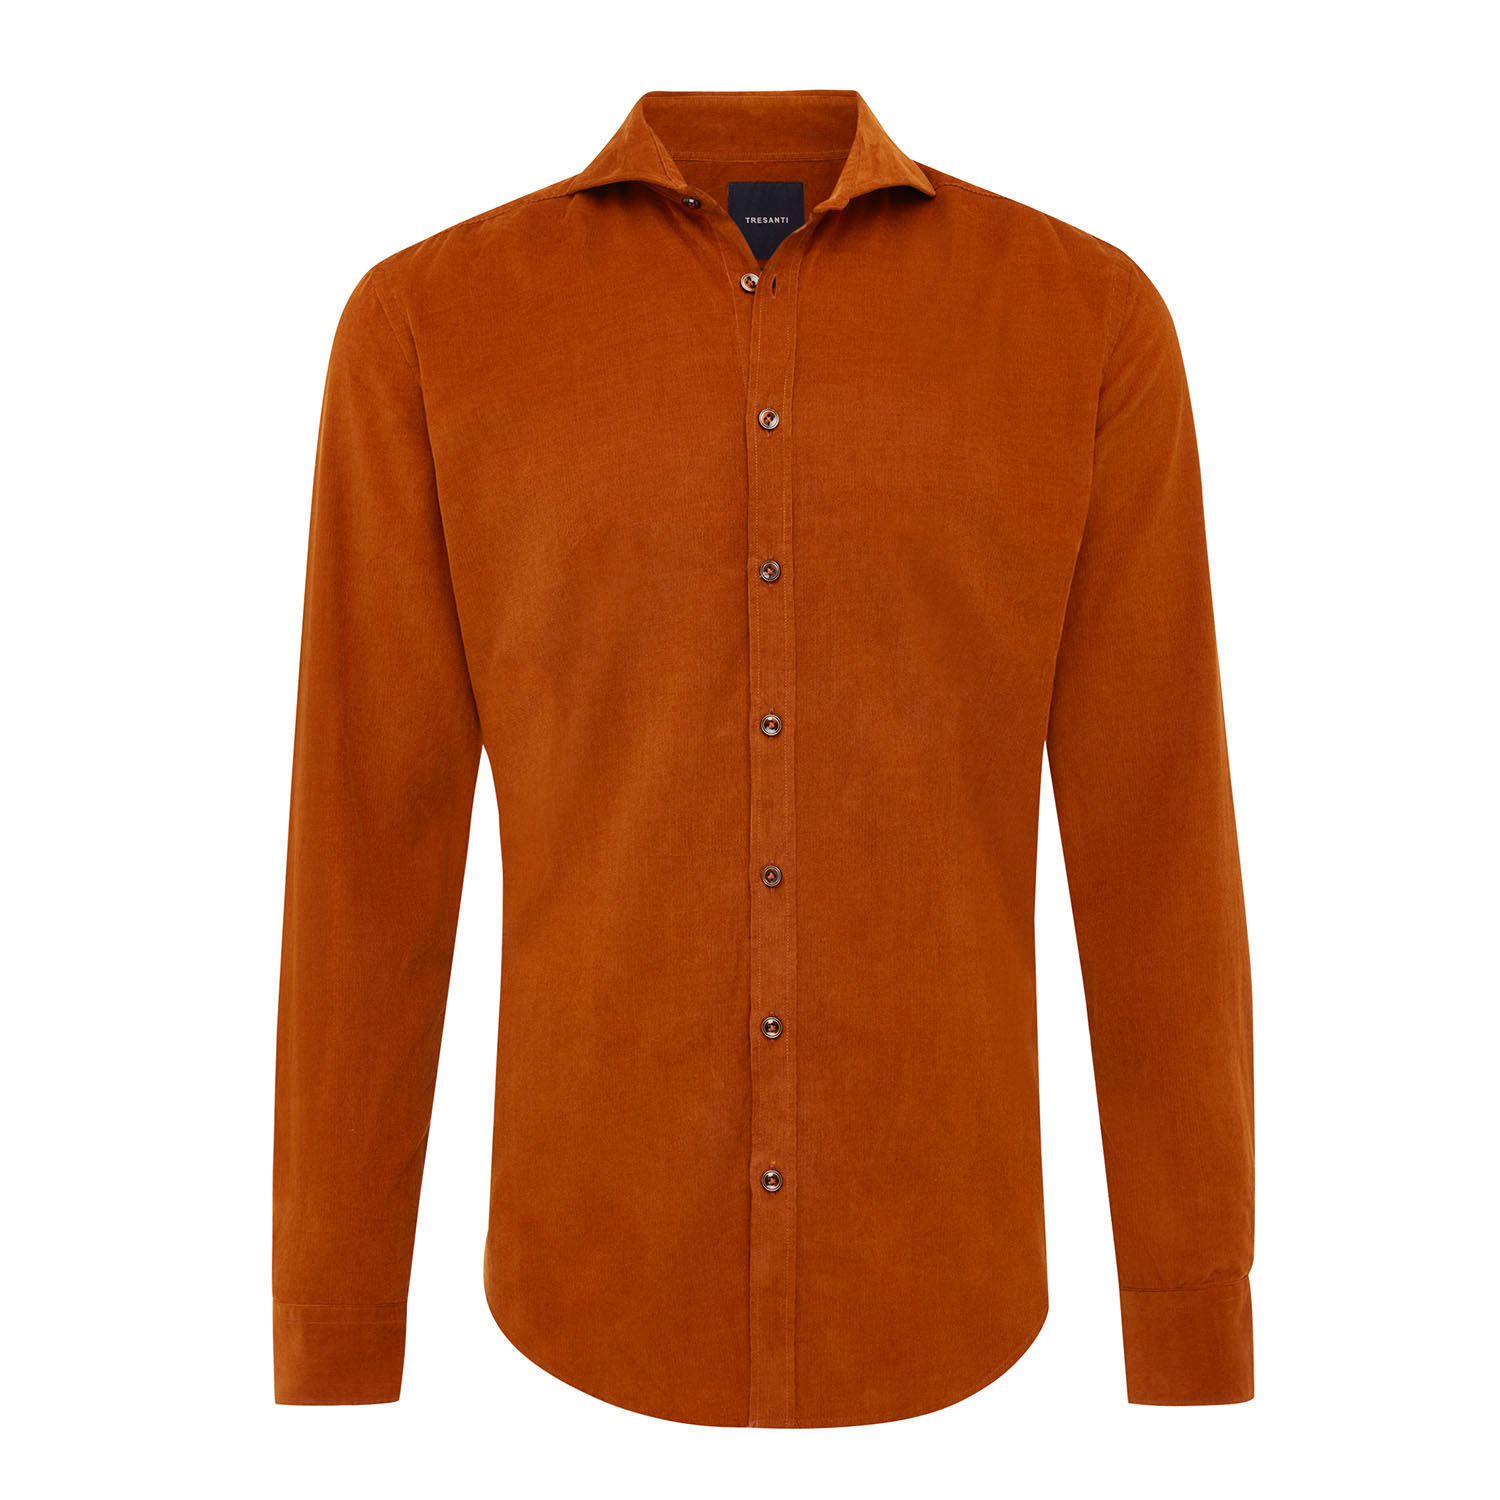 EMRIC   Shirt with button closure and baby cord camel